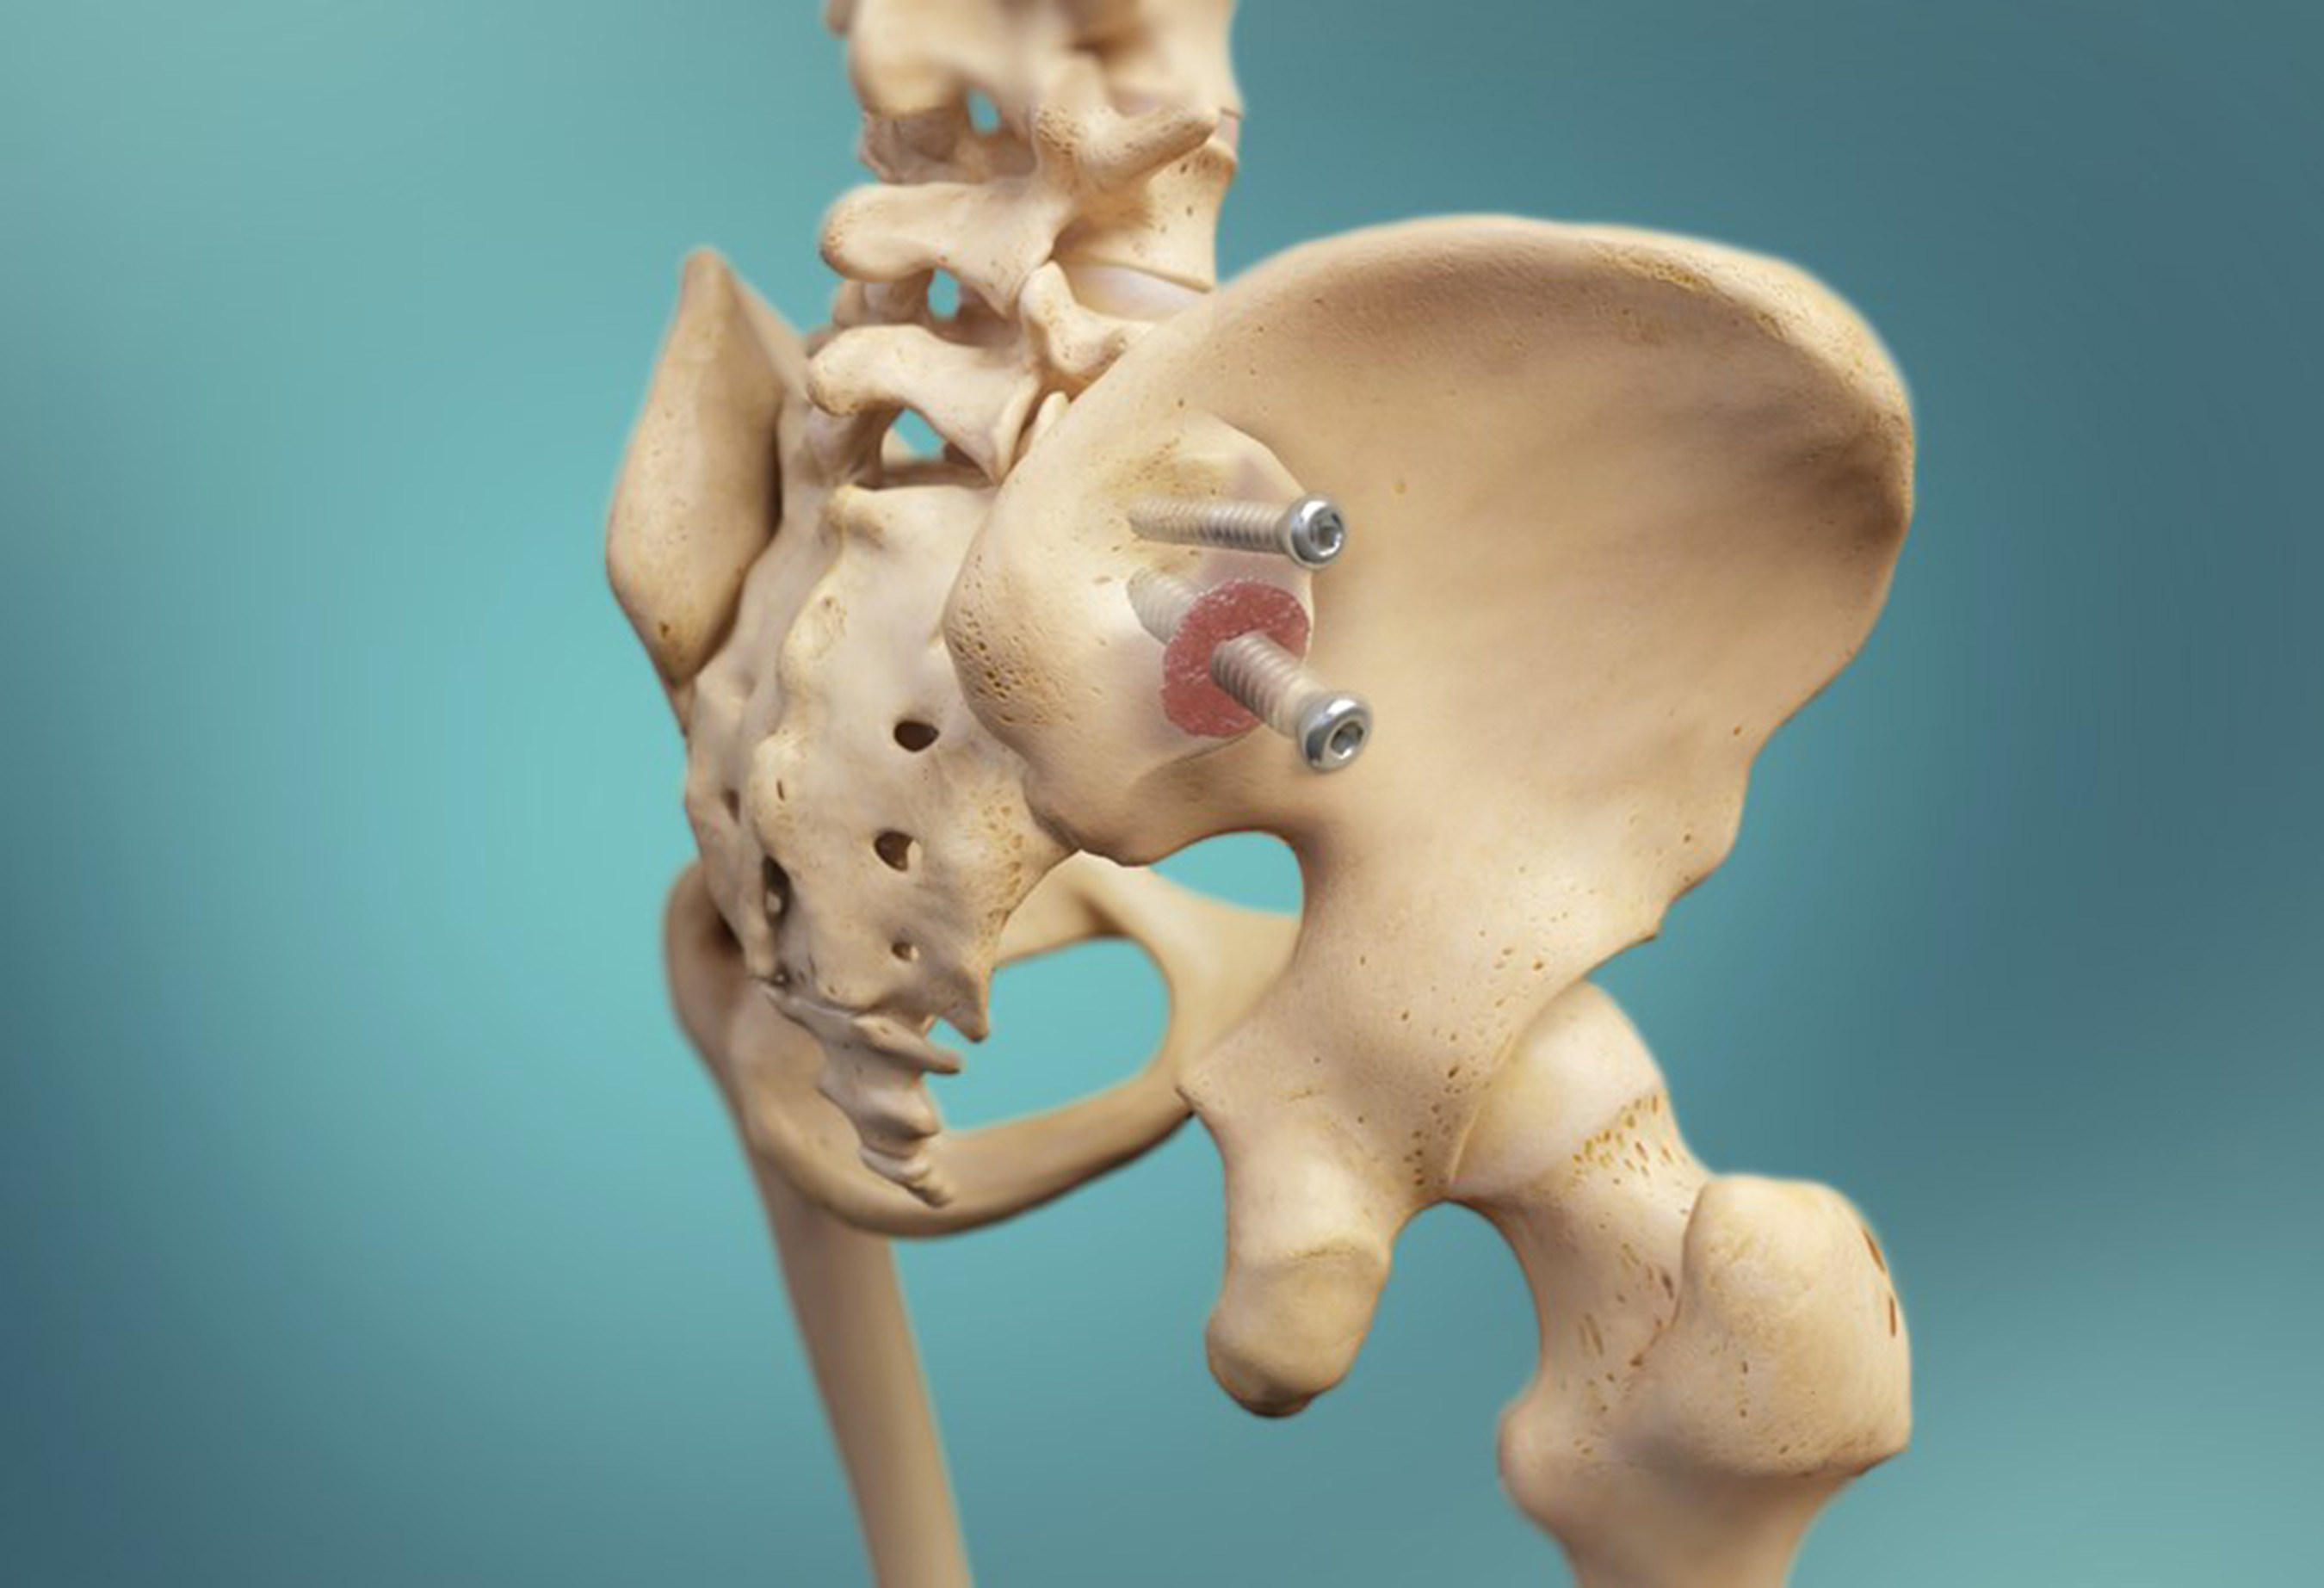 SImmetry Sacroiliac Joint Fusion System design enables true fusion for lasting relief of low back pain.